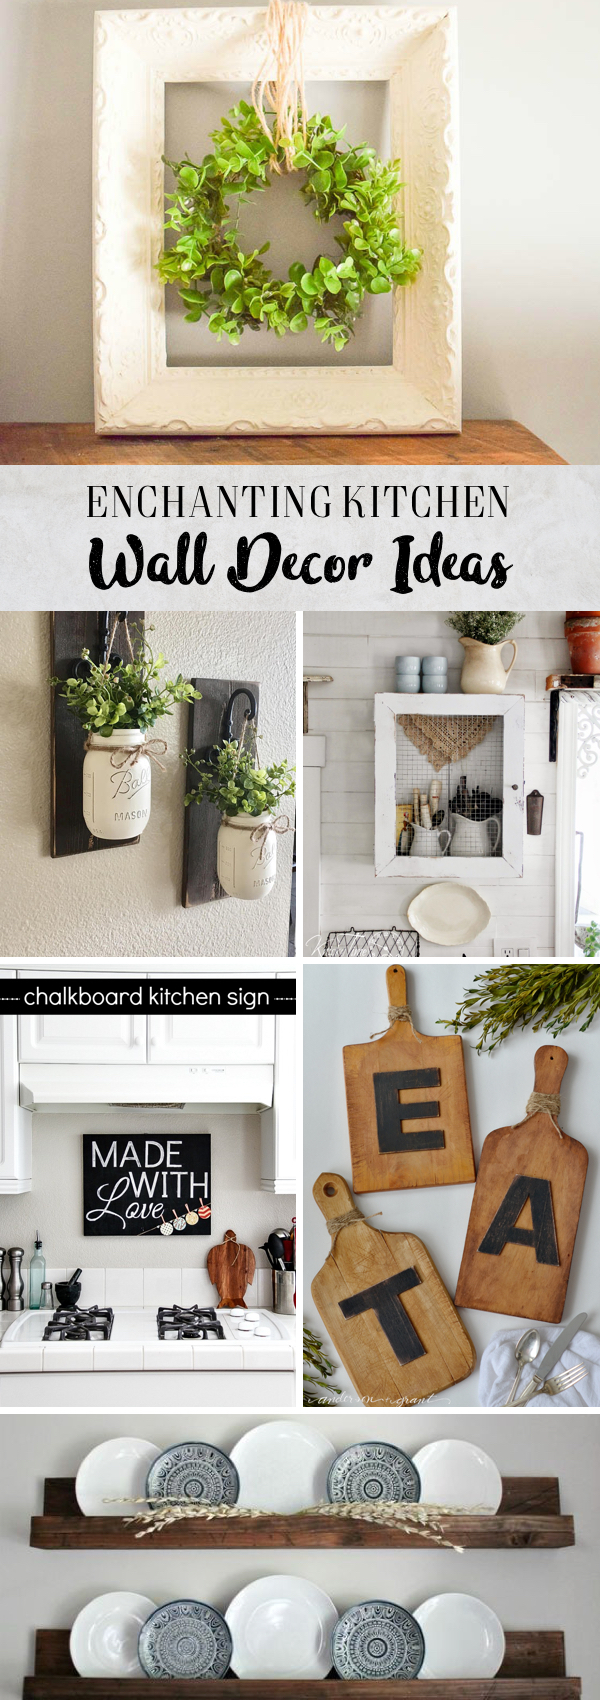 enchanting large kitchen idea | 30 Enchanting Kitchen Wall Decor Ideas That are Oozing ...